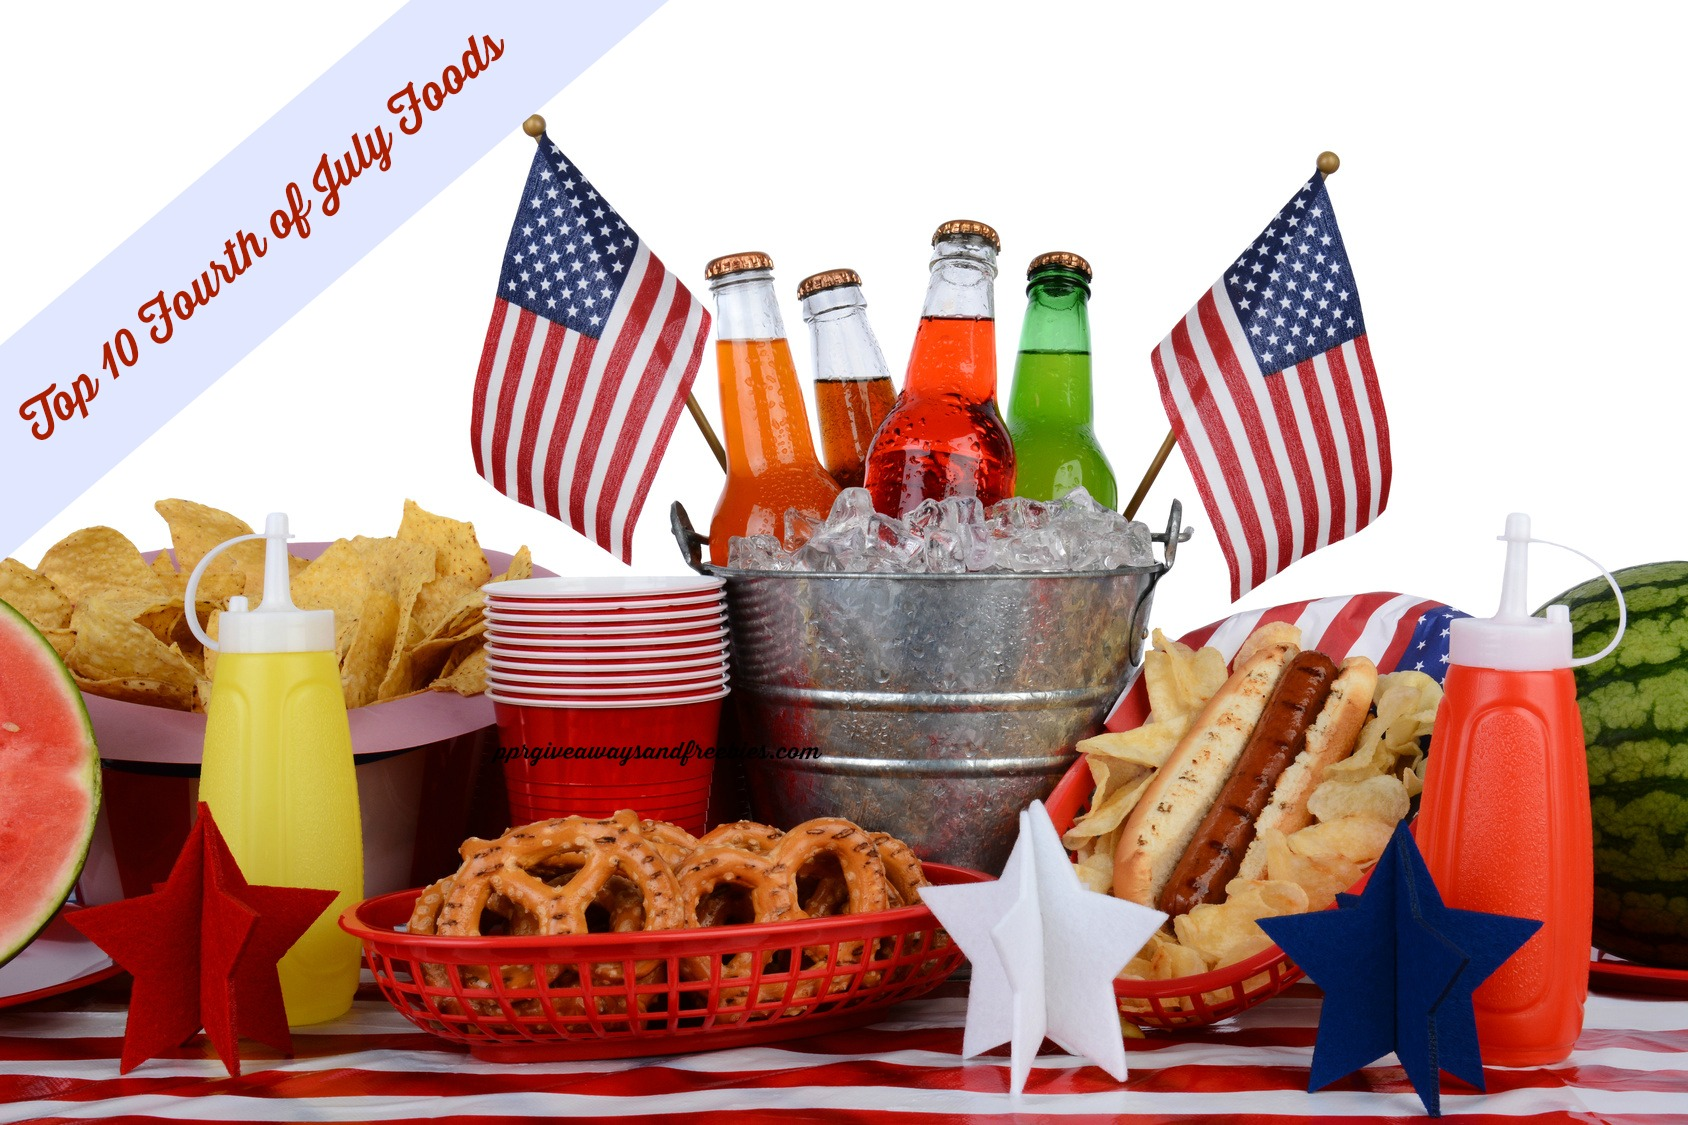 Top 4th of July Foods